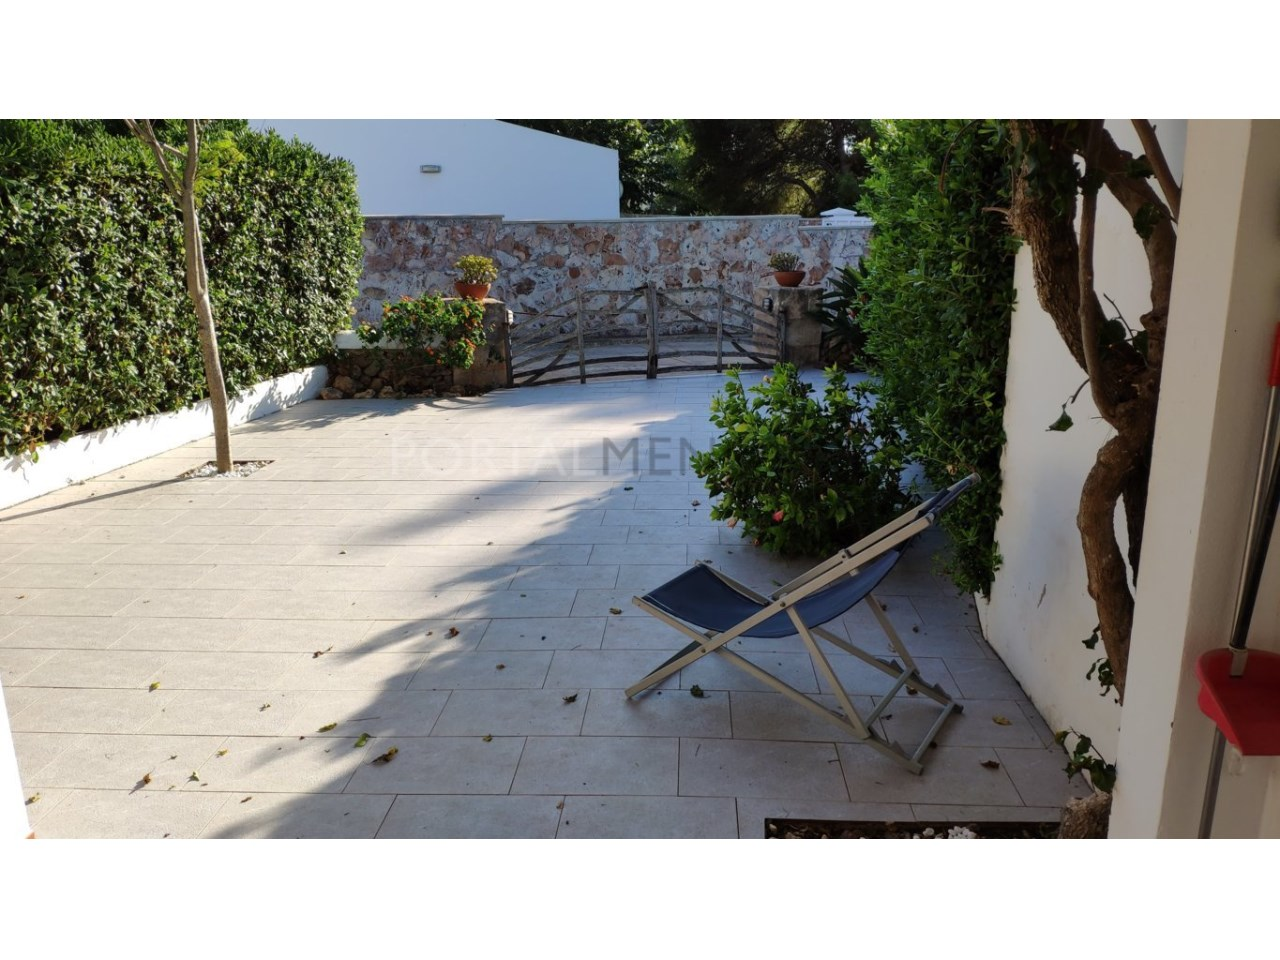 Townhouse for sale in Calan Blanes near the beach- yard